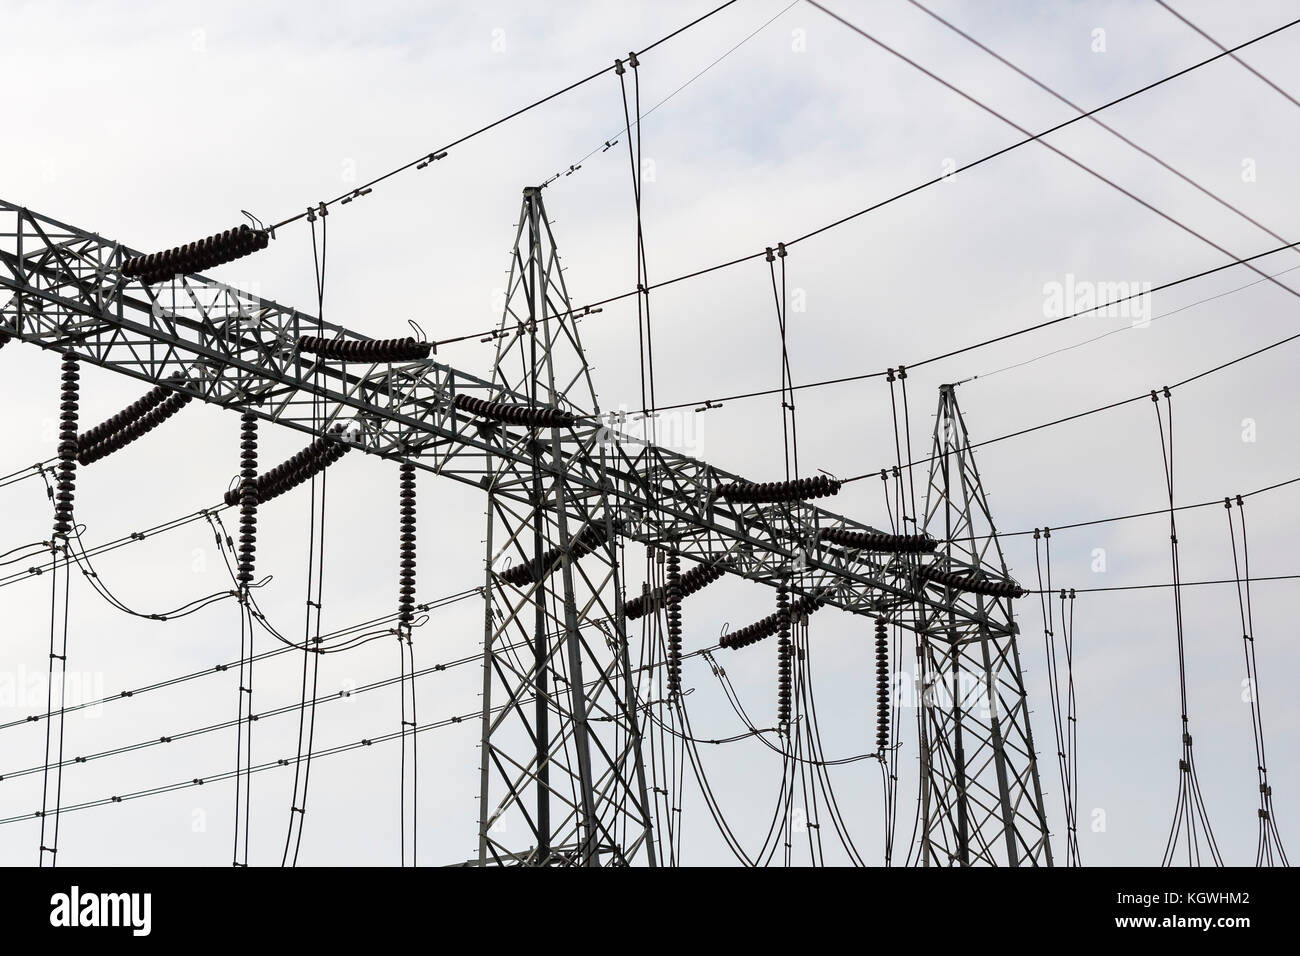 India Electric Transformer Stock Photos & India Electric ...